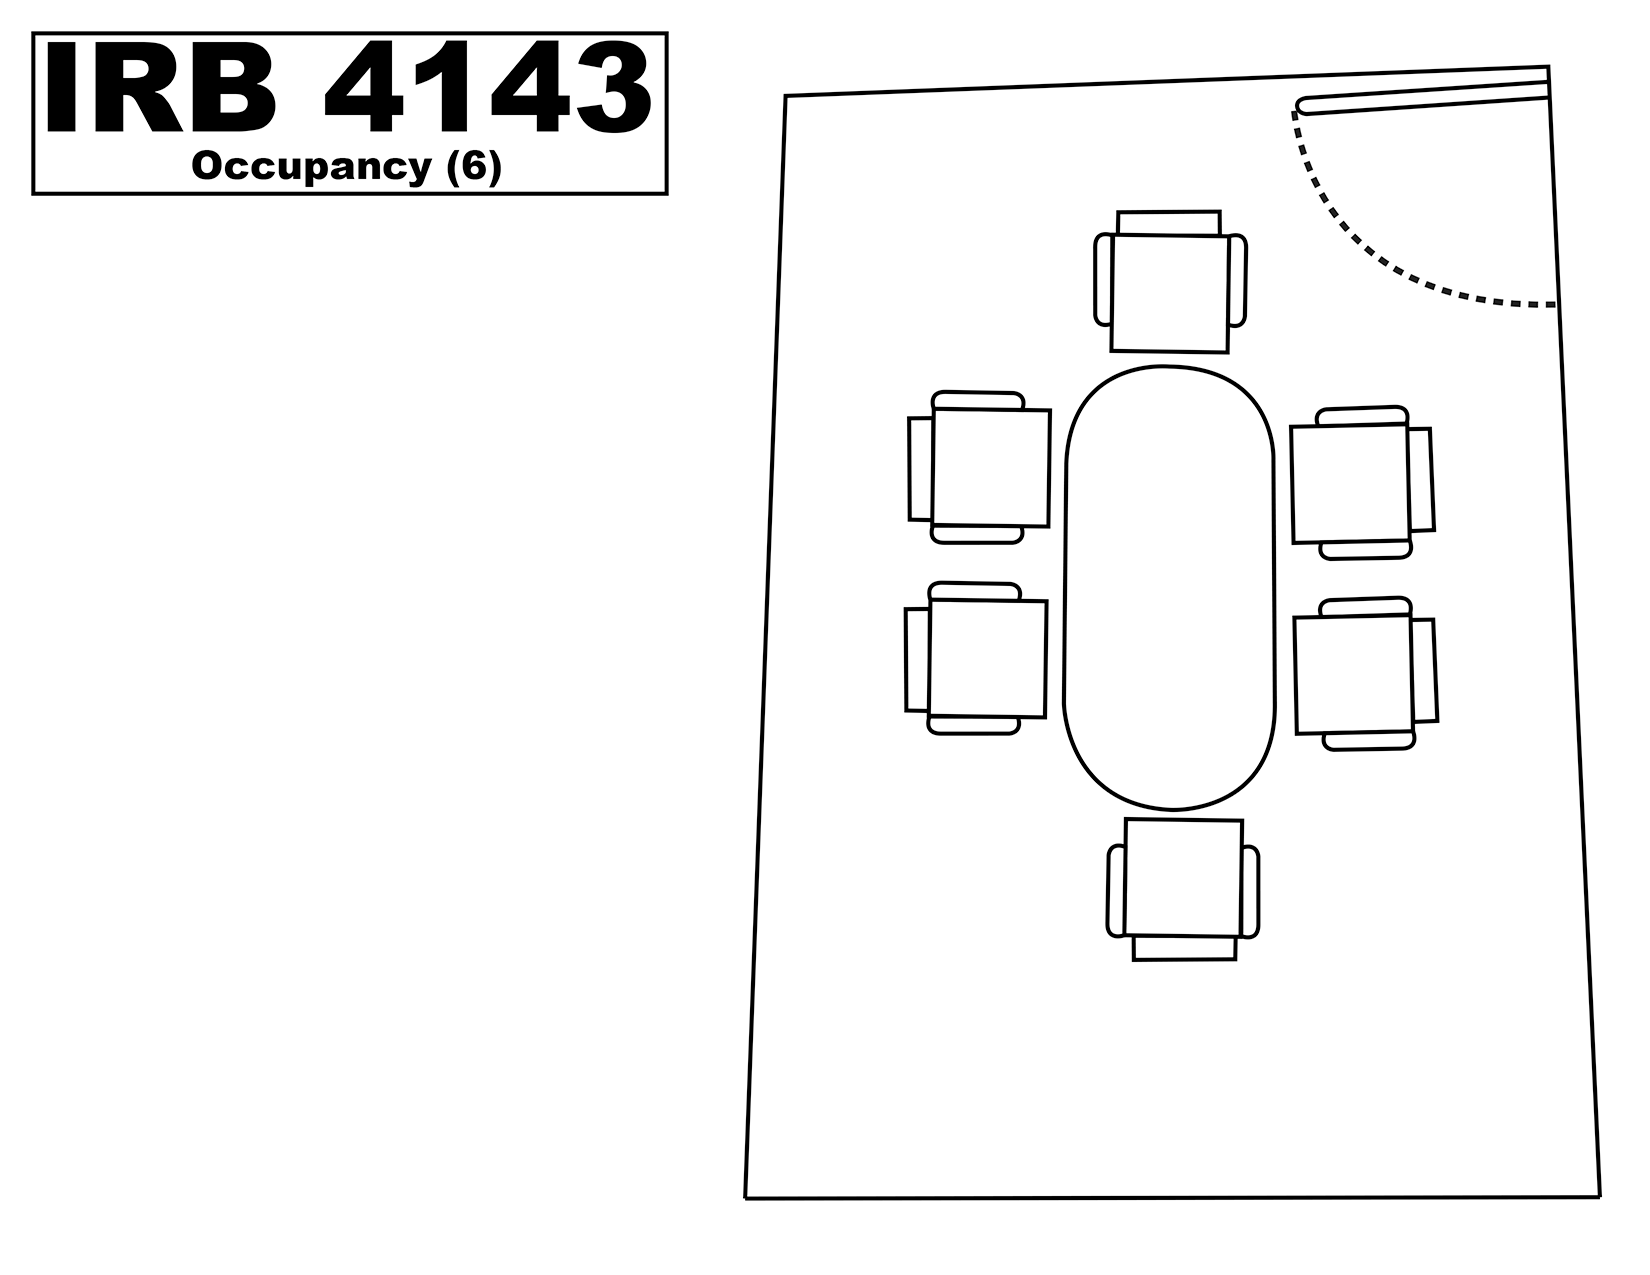 IRB4143 floorplan